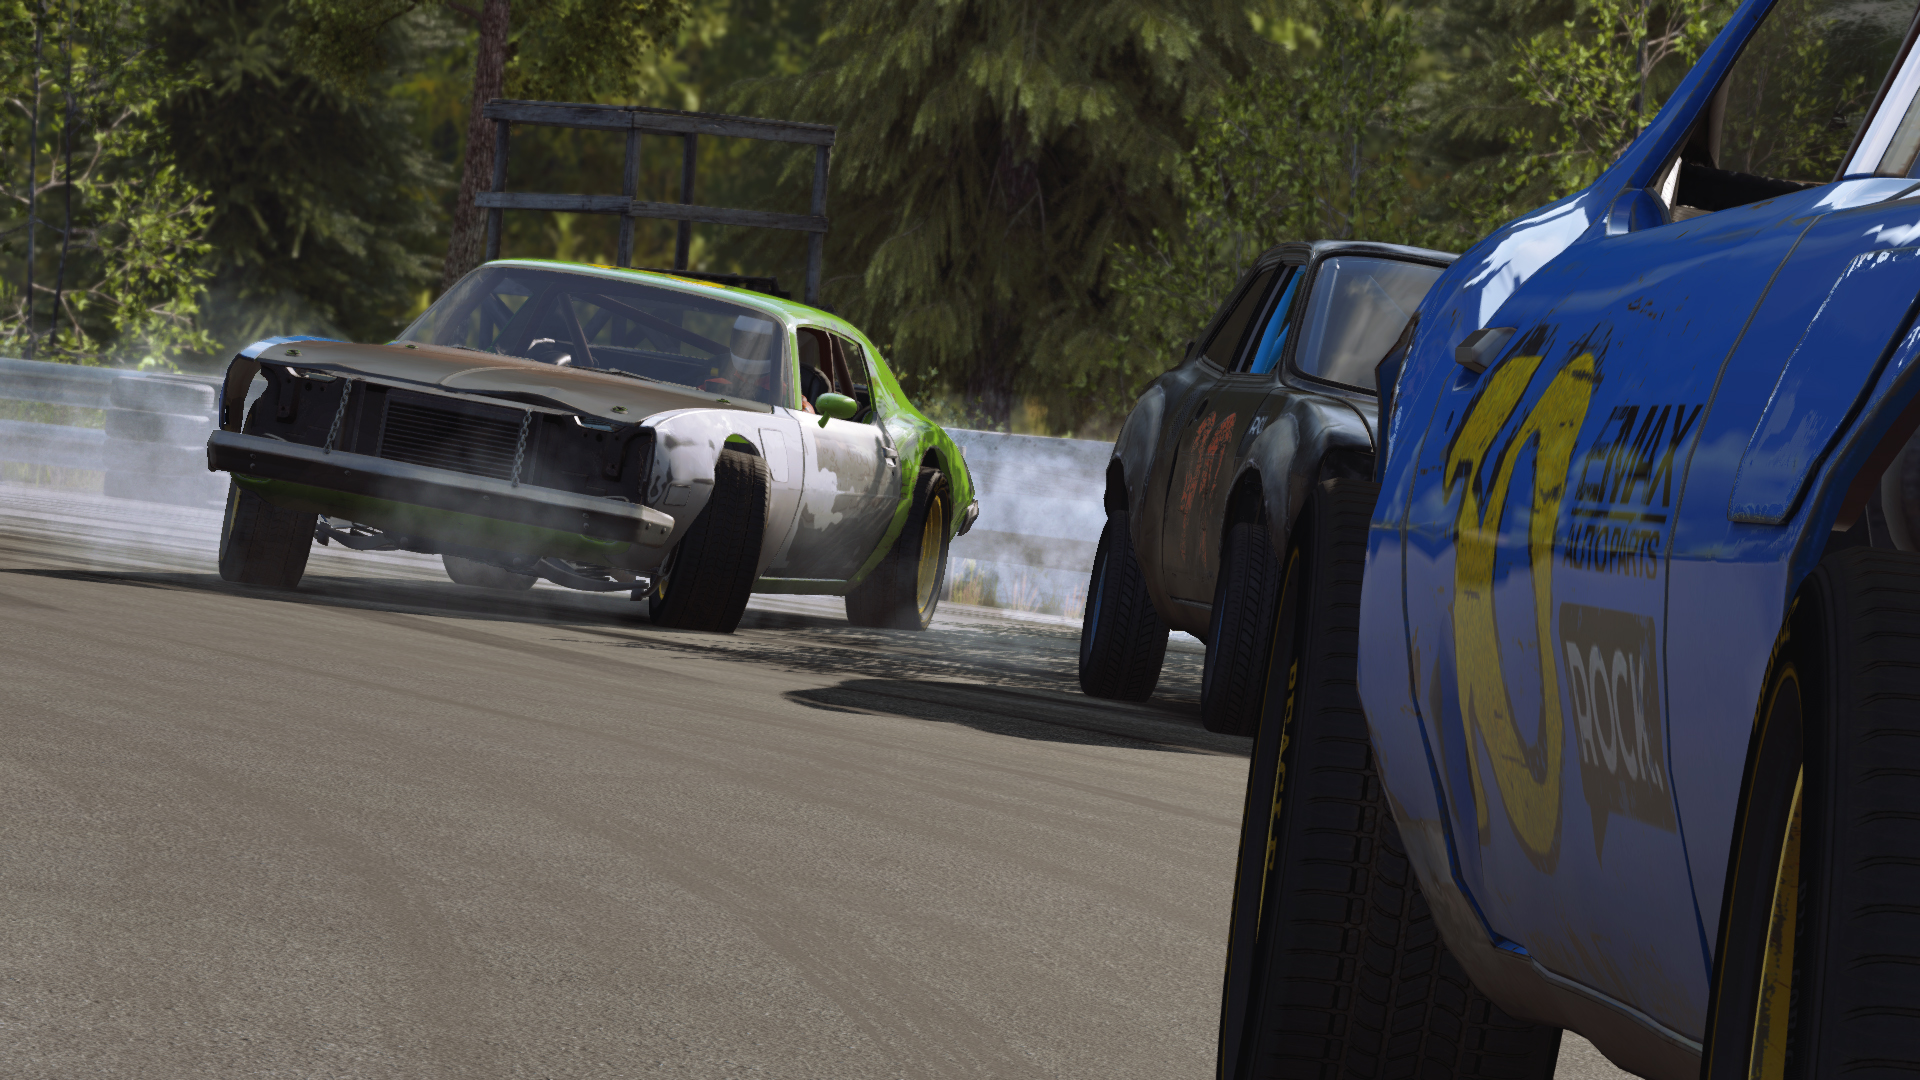 Image from Wreckfest for PC